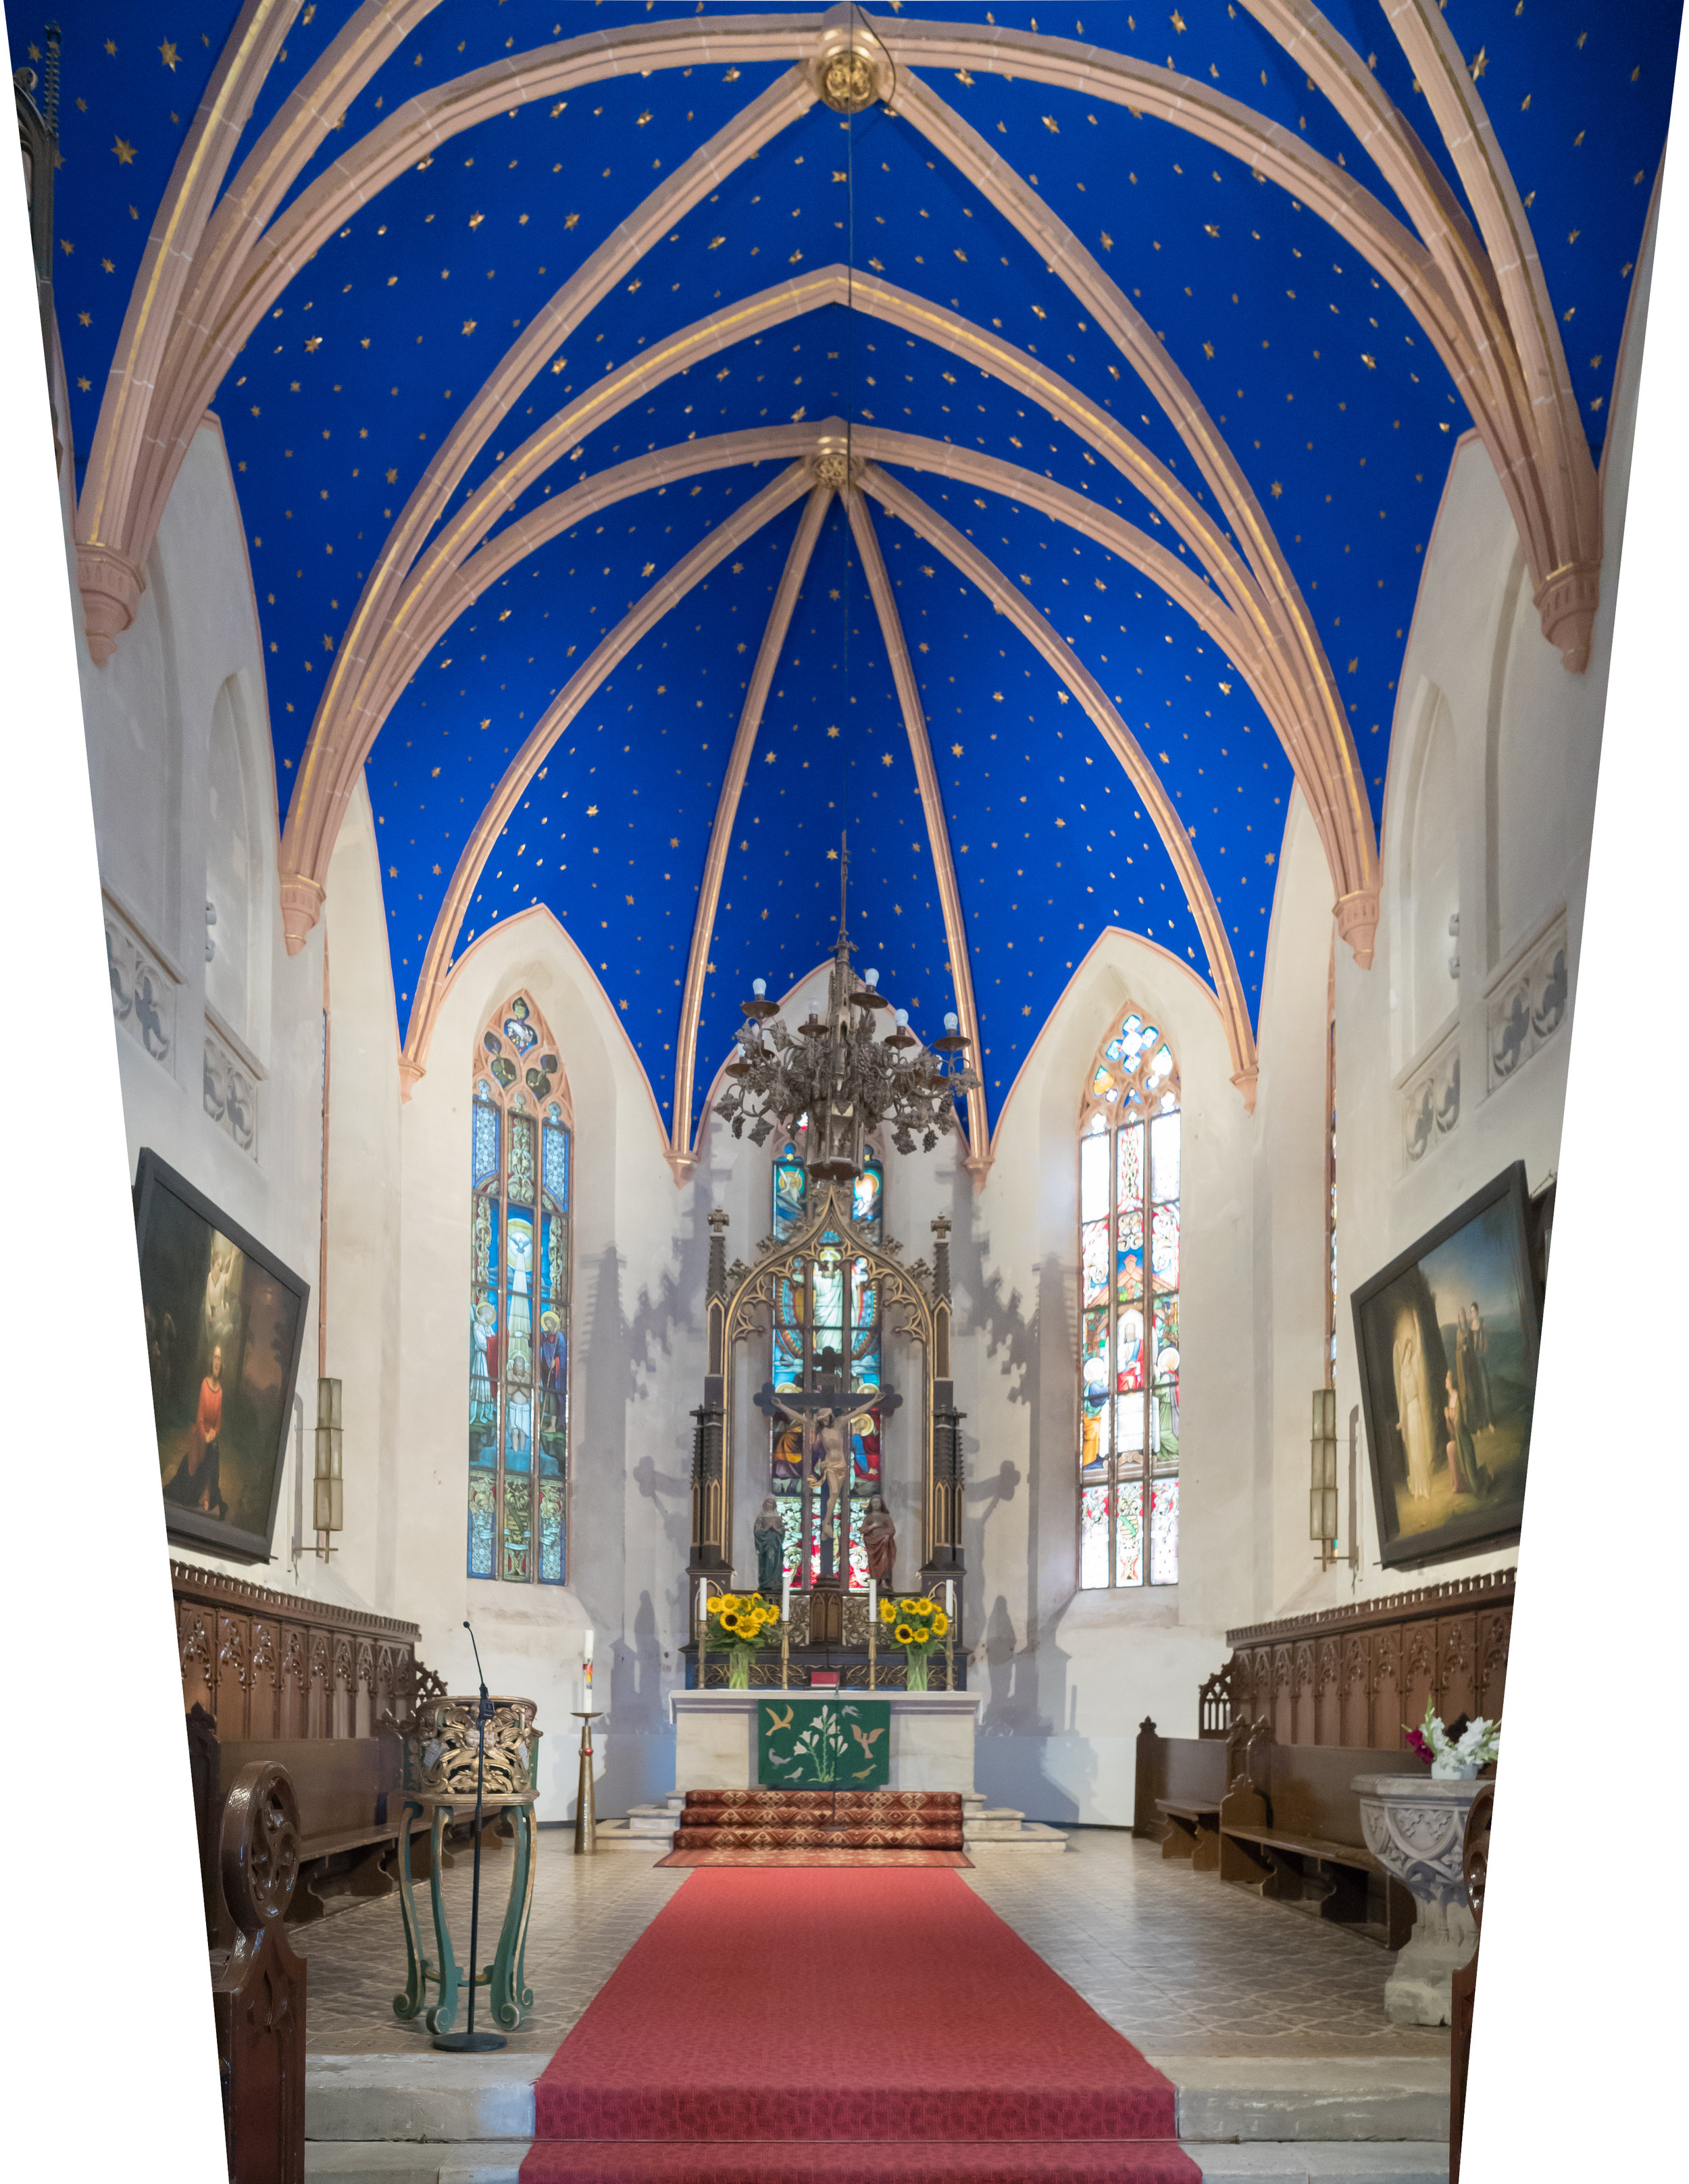 Stadtkirche St. Peter: Interior of church where my father was christened